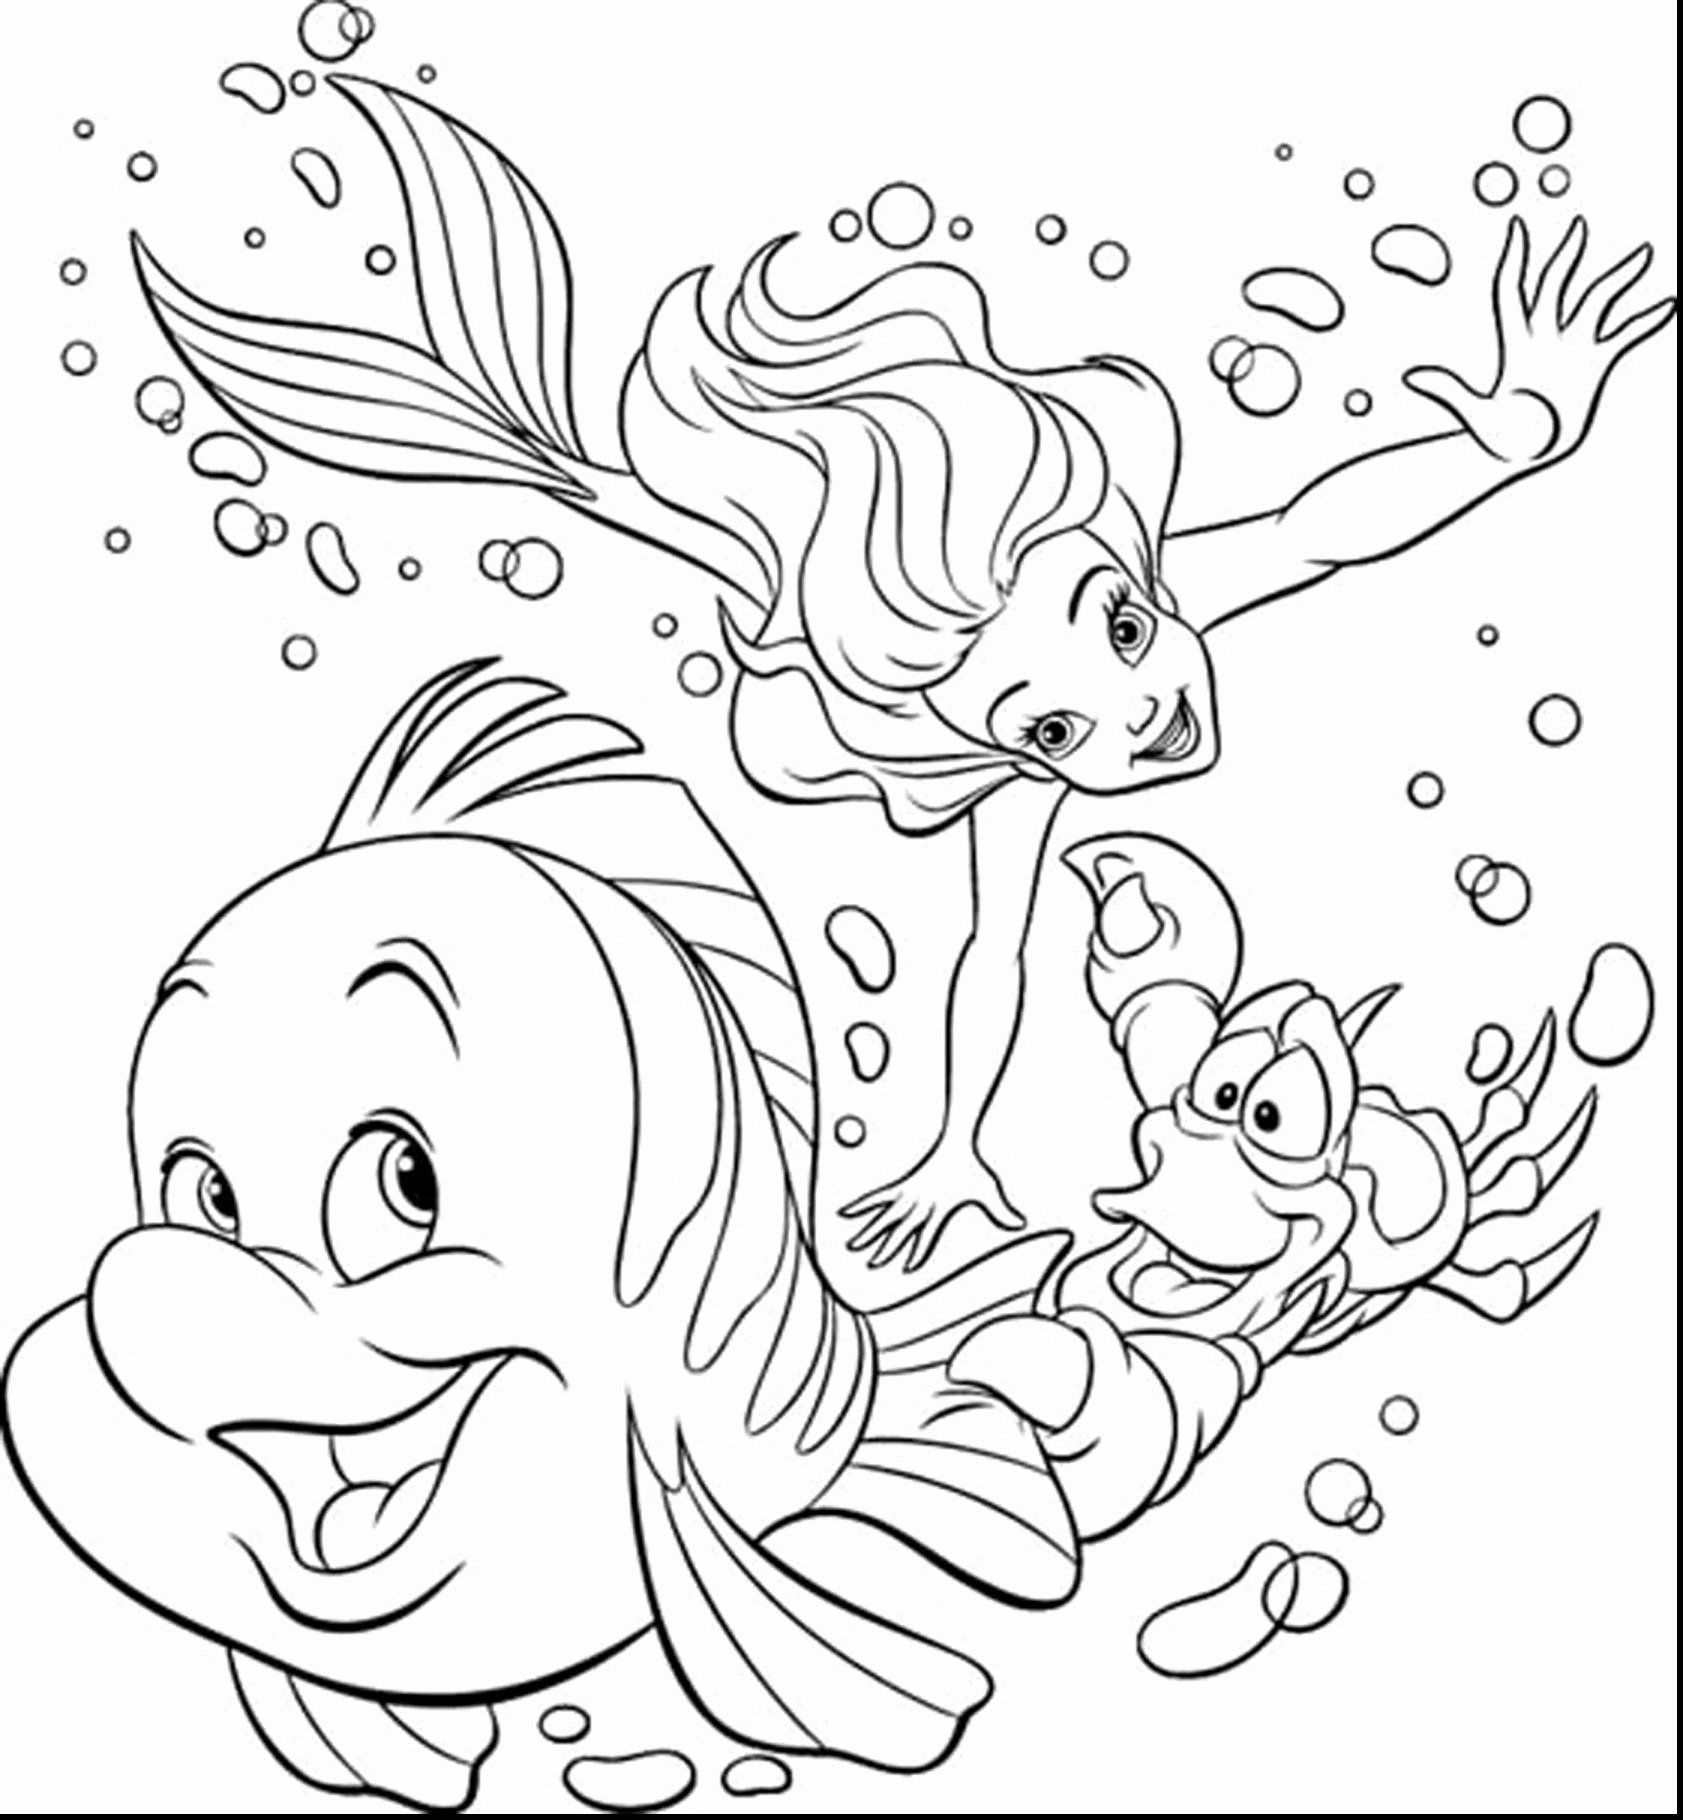 Disney Baby Coloring Pages Lovely 28 New Coloring Pages For Kids Moana Disney Princess Coloring Pages Ariel Coloring Pages Cartoon Coloring Pages